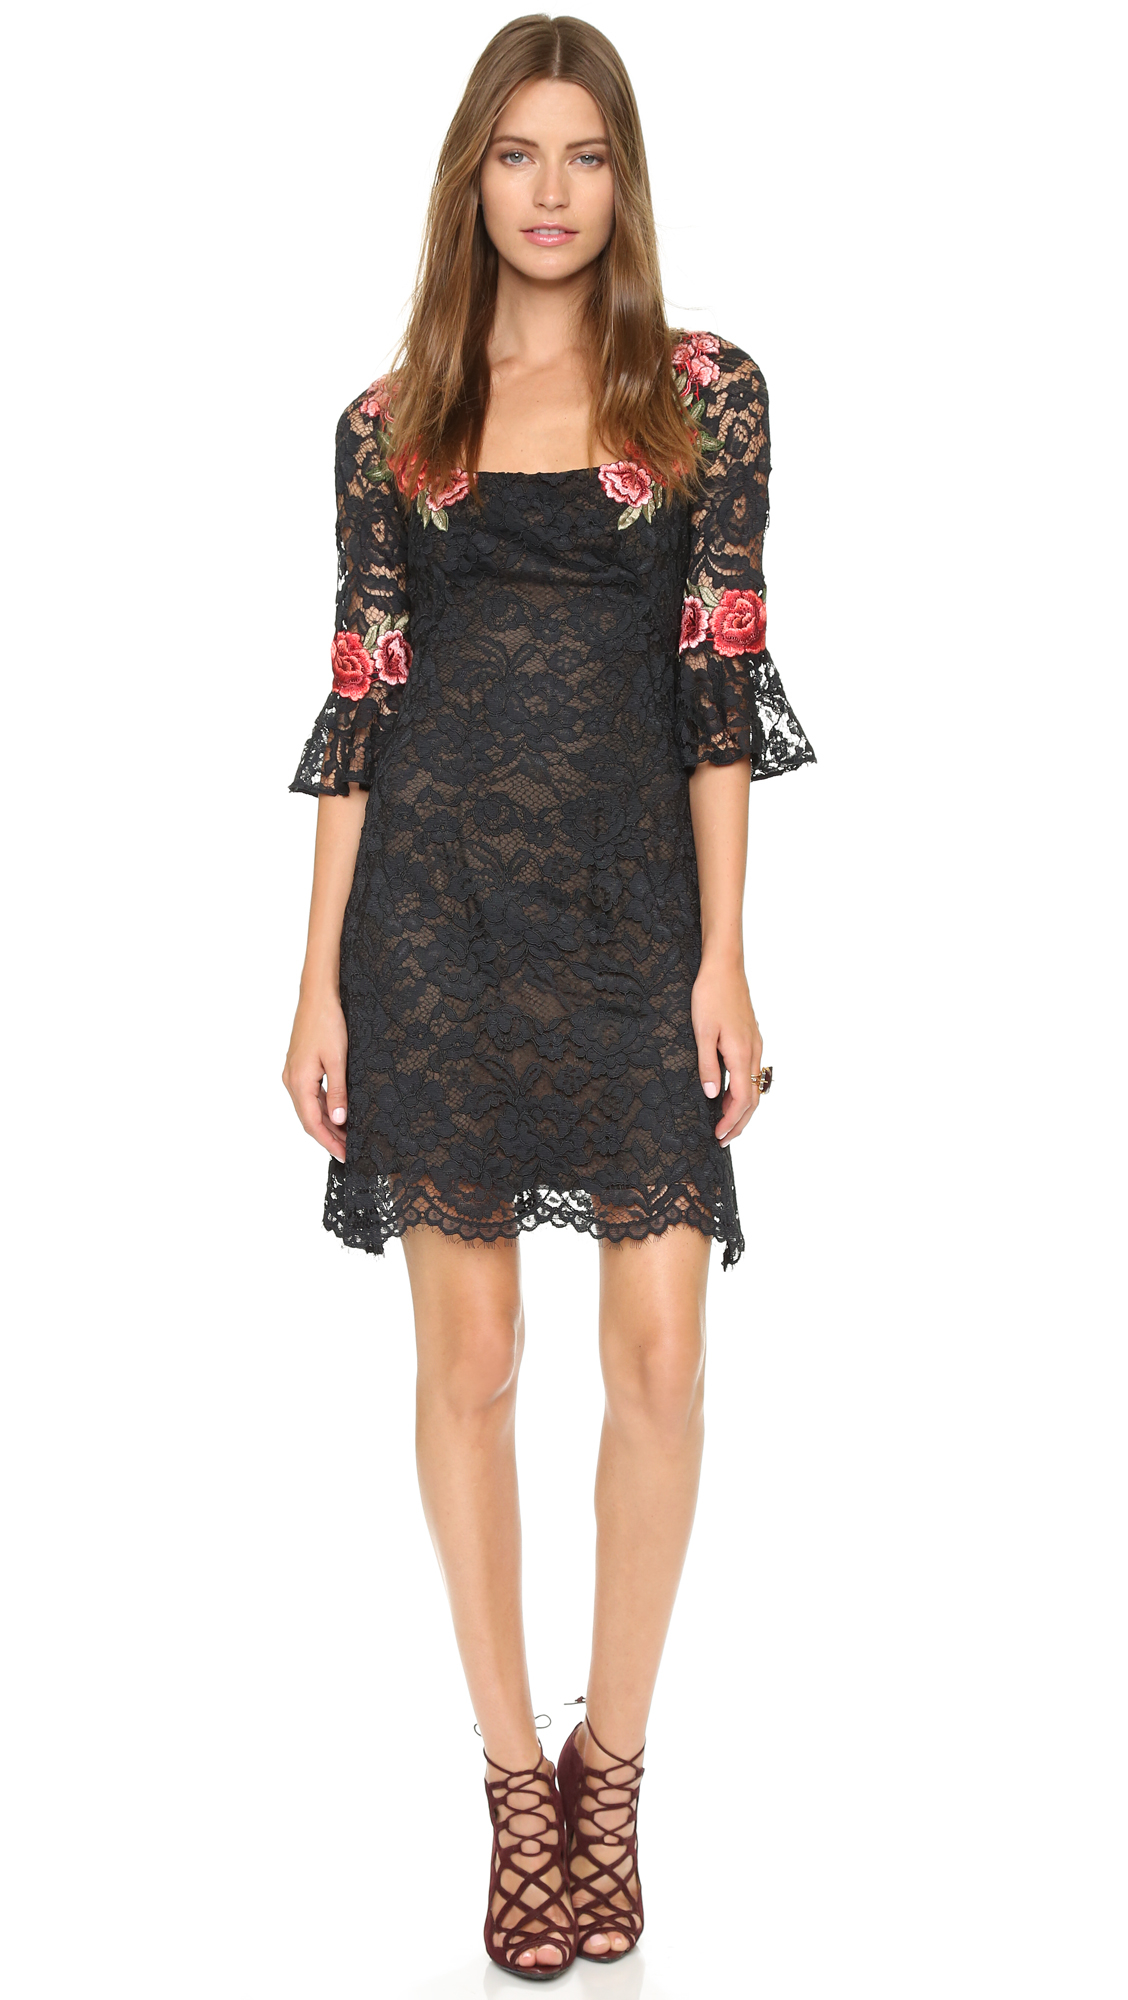 lyst notte by marchesa lace cocktail dress black in black